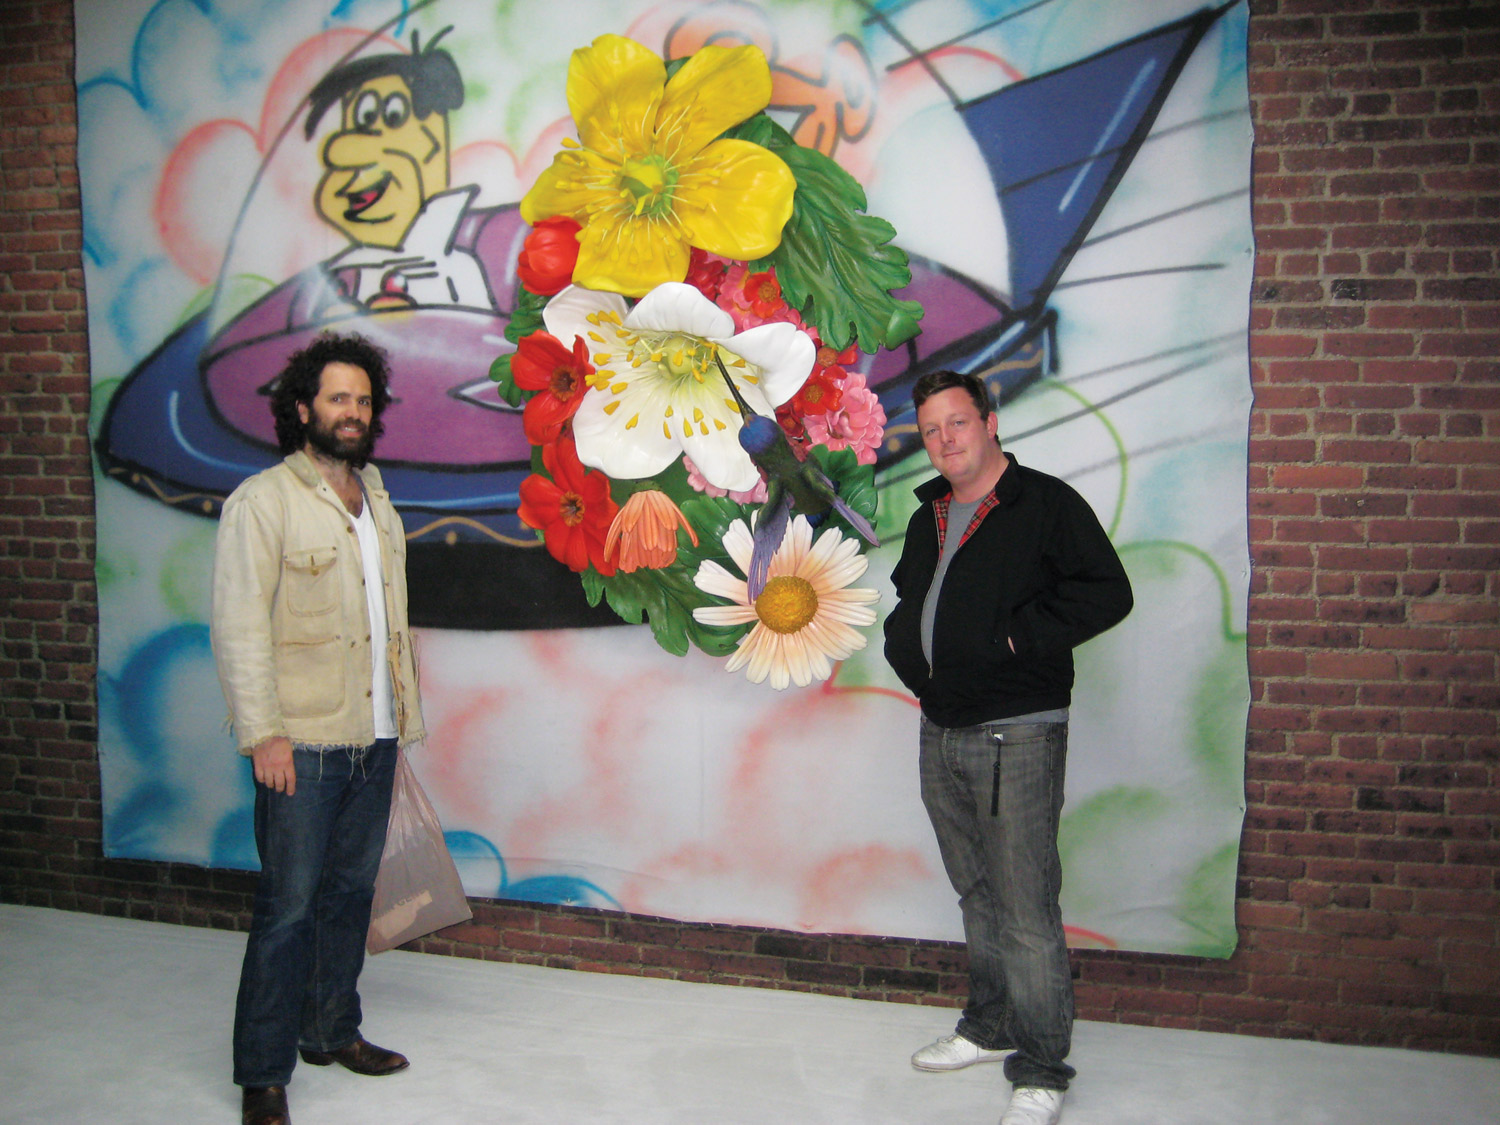 """Gavin Brown (left) and Urs Fischer at the opening reception of """"Who's Afraid of Jasper Johns?"""" at Tony Shafrazi Gallery, New York 2008. Courtesy Tony Shafrazi Gallery, New York. Photo: Mark Pasek."""